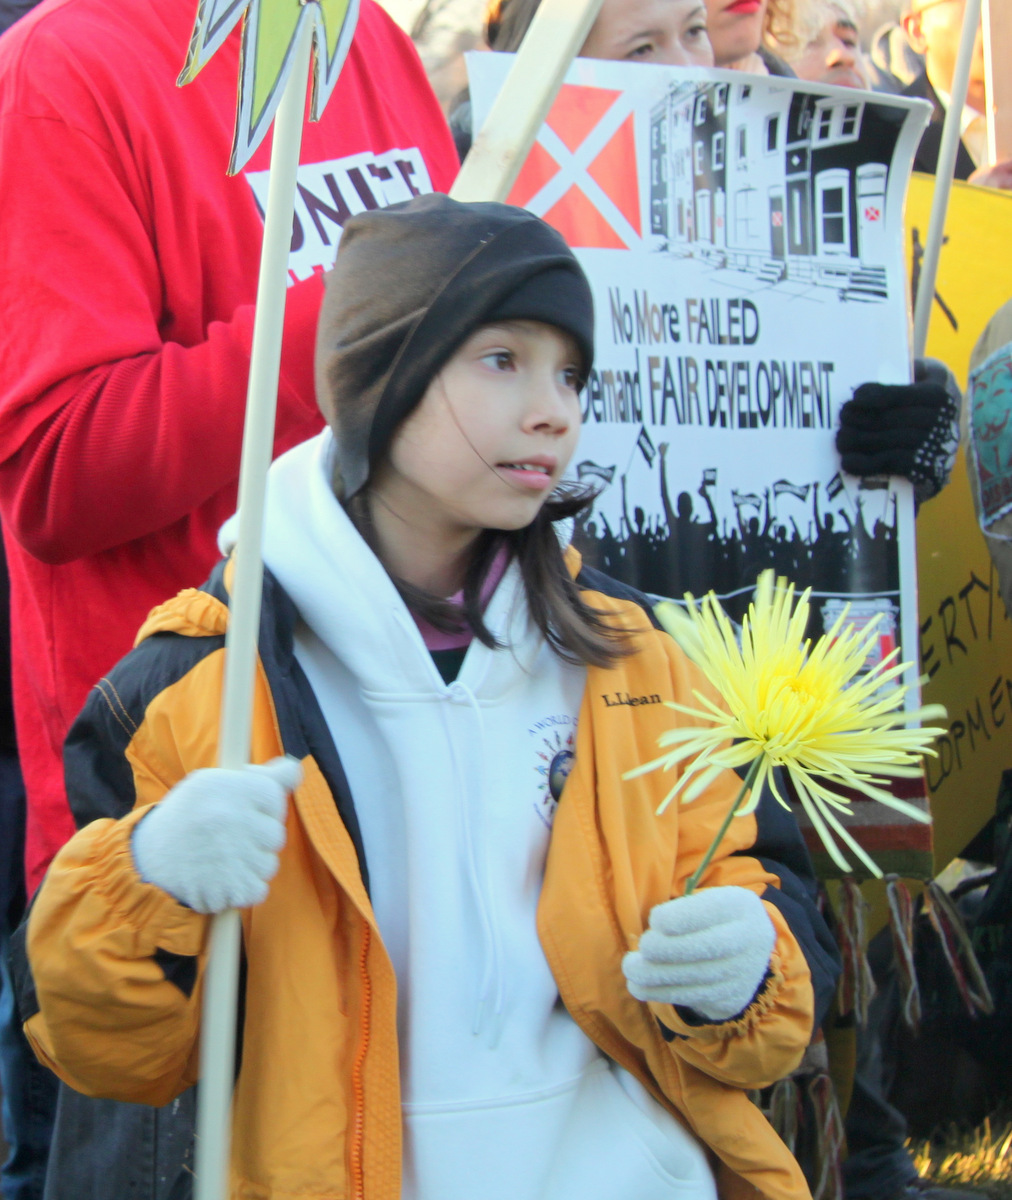 Thanya Fox, 11, was among the marchers. (Photo by Fern Shen)